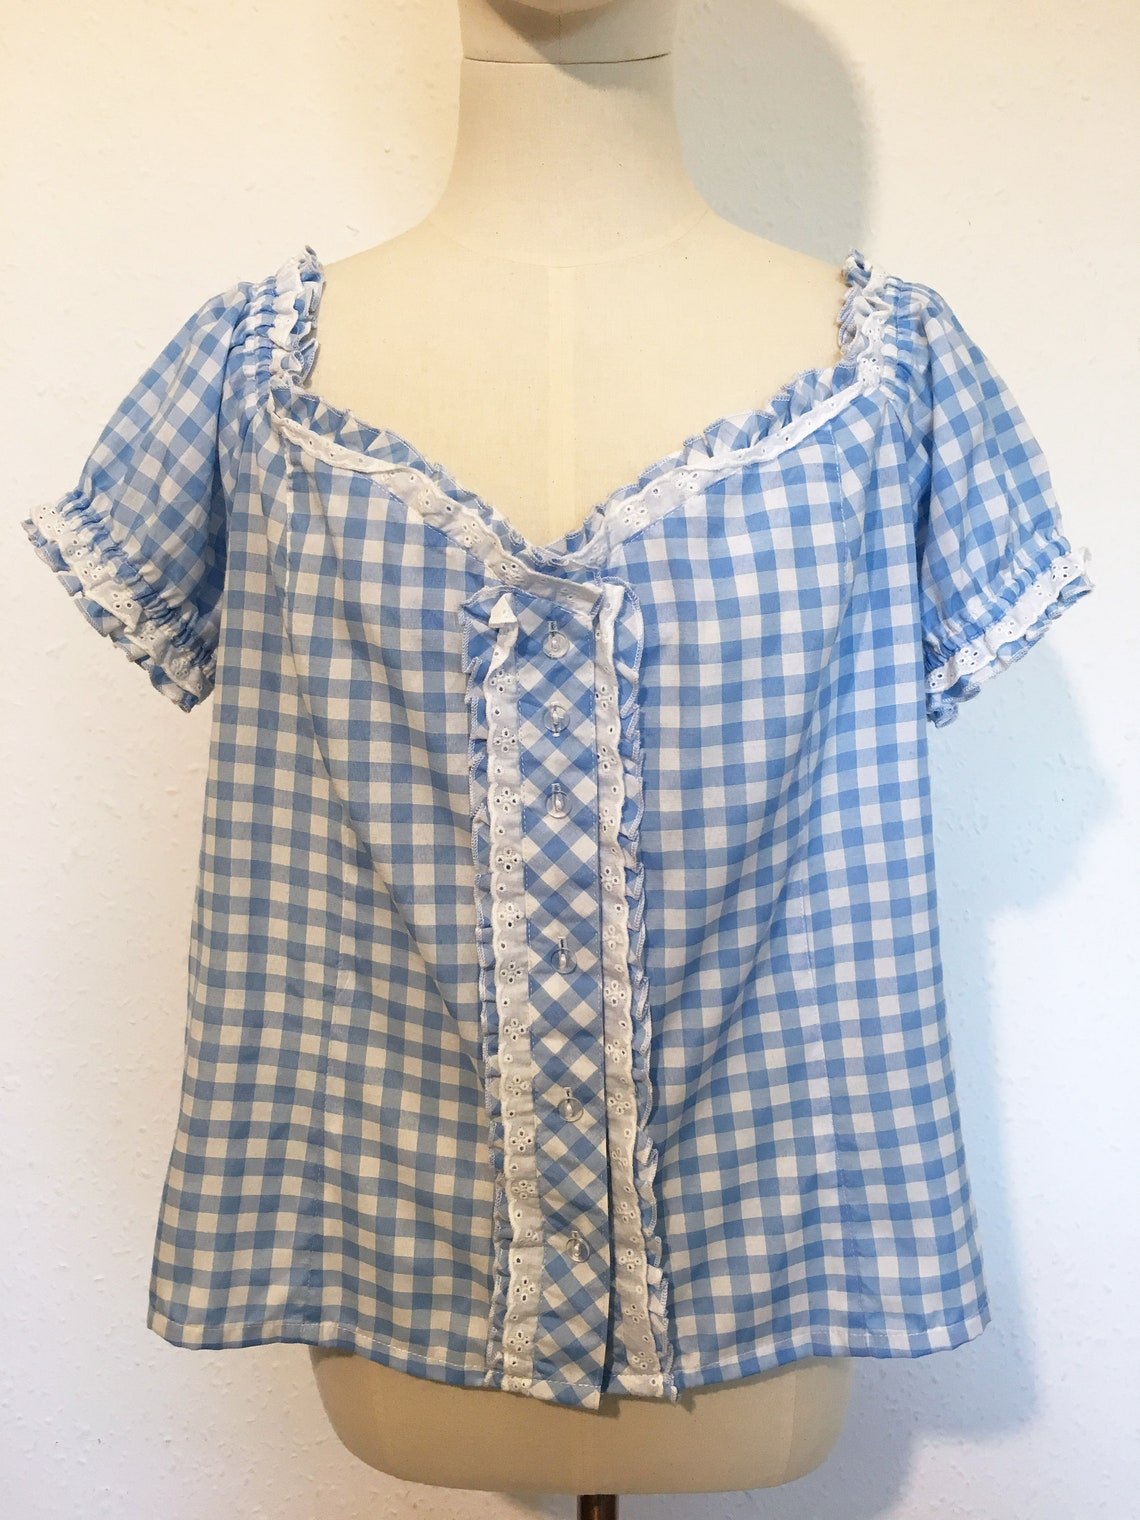 Size 18 Cute 1990s gingham dirndl blouse image 2